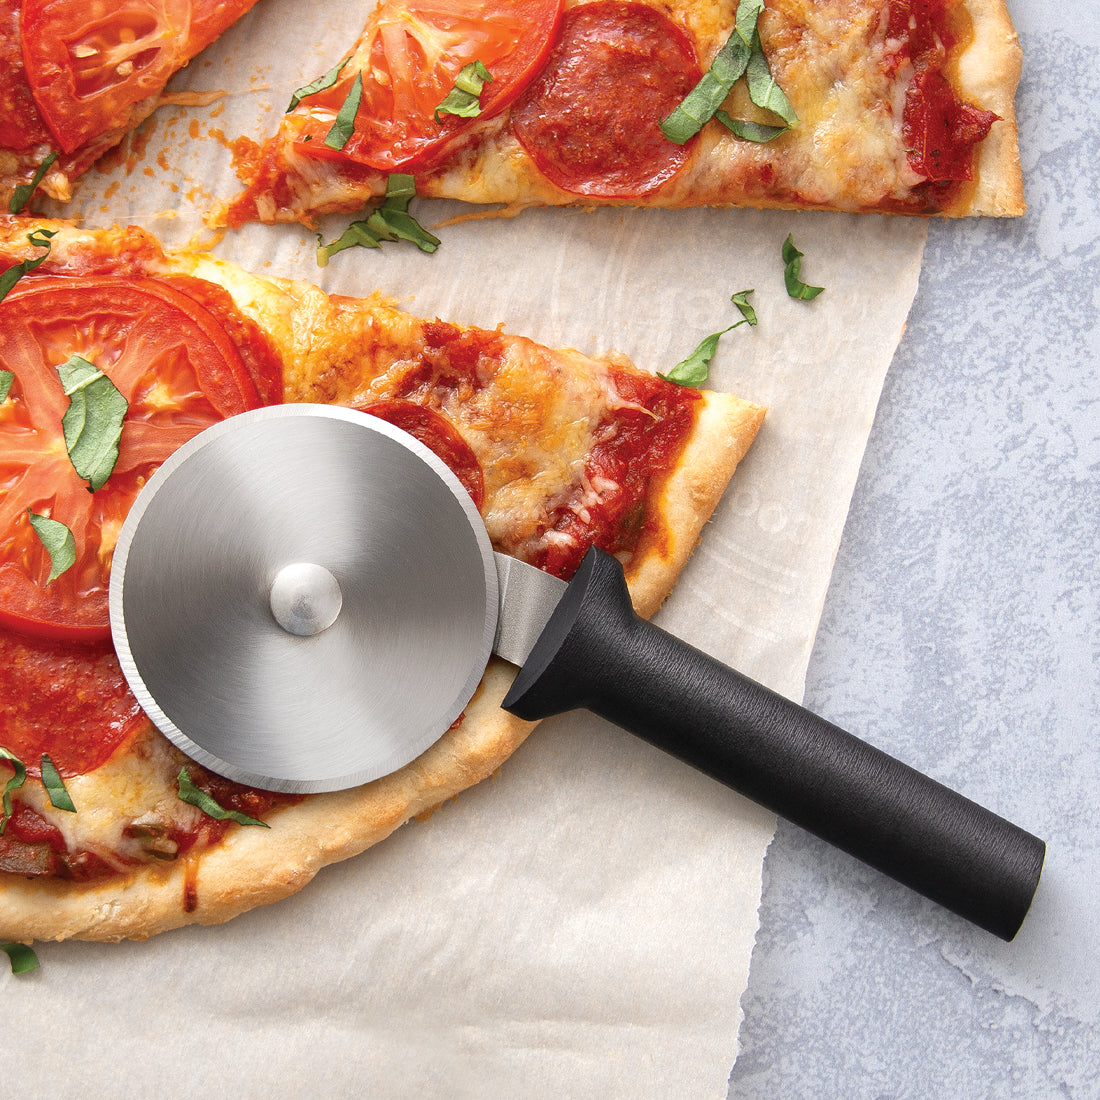 Rada Cutlery pizza cutter with black handle and steel wheel on pizza slice.